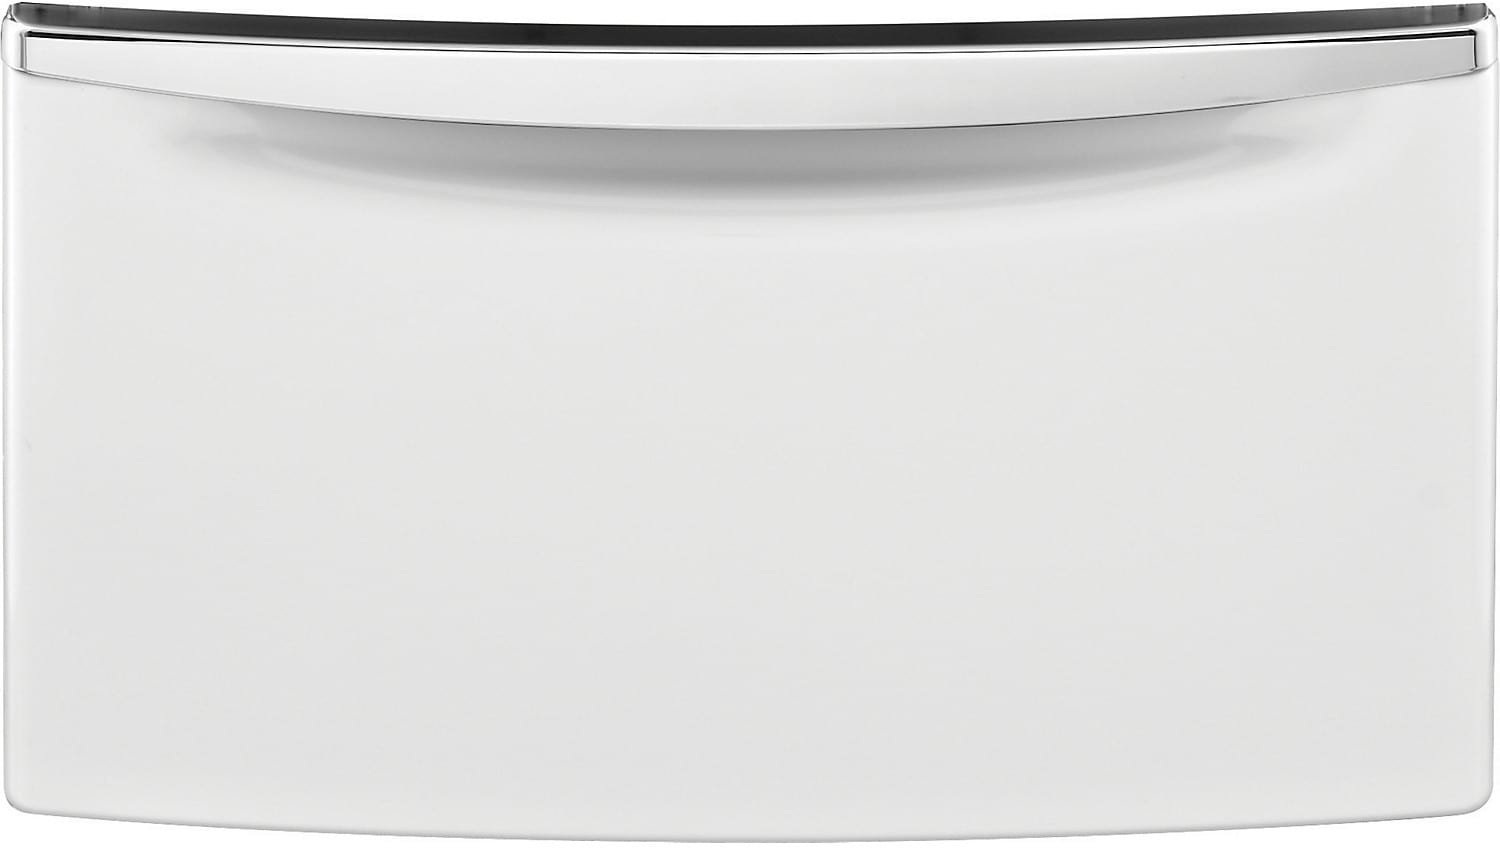 "Appliance Accessories - Whirlpool 15.5"" H Laundry Pedestal w/Storage Drawer - White"